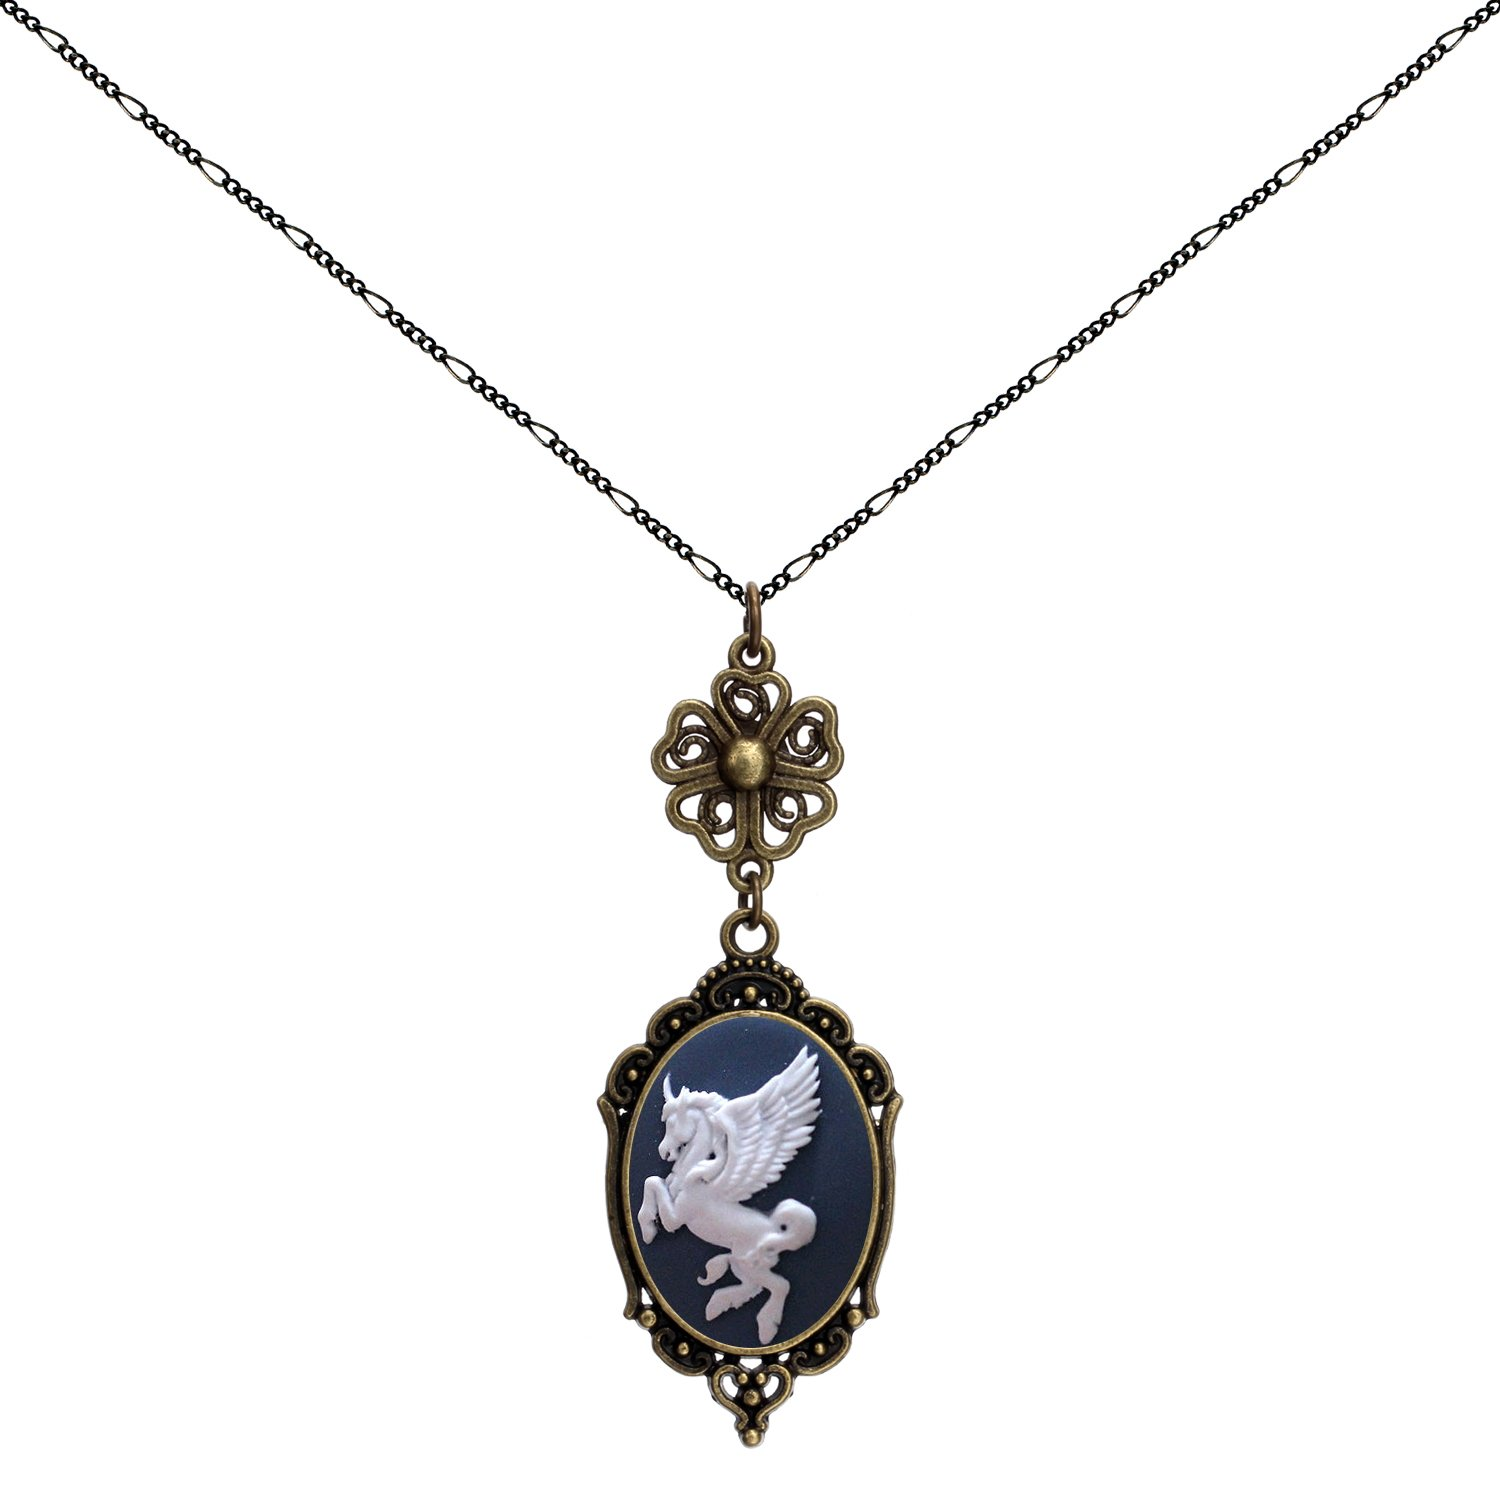 Yspace White Pegasus Lucky Clover Heart Necklace Best Friend Charms Brand New Jewelry 2 Chain Deluxe Gift by Yspace (Image #1)